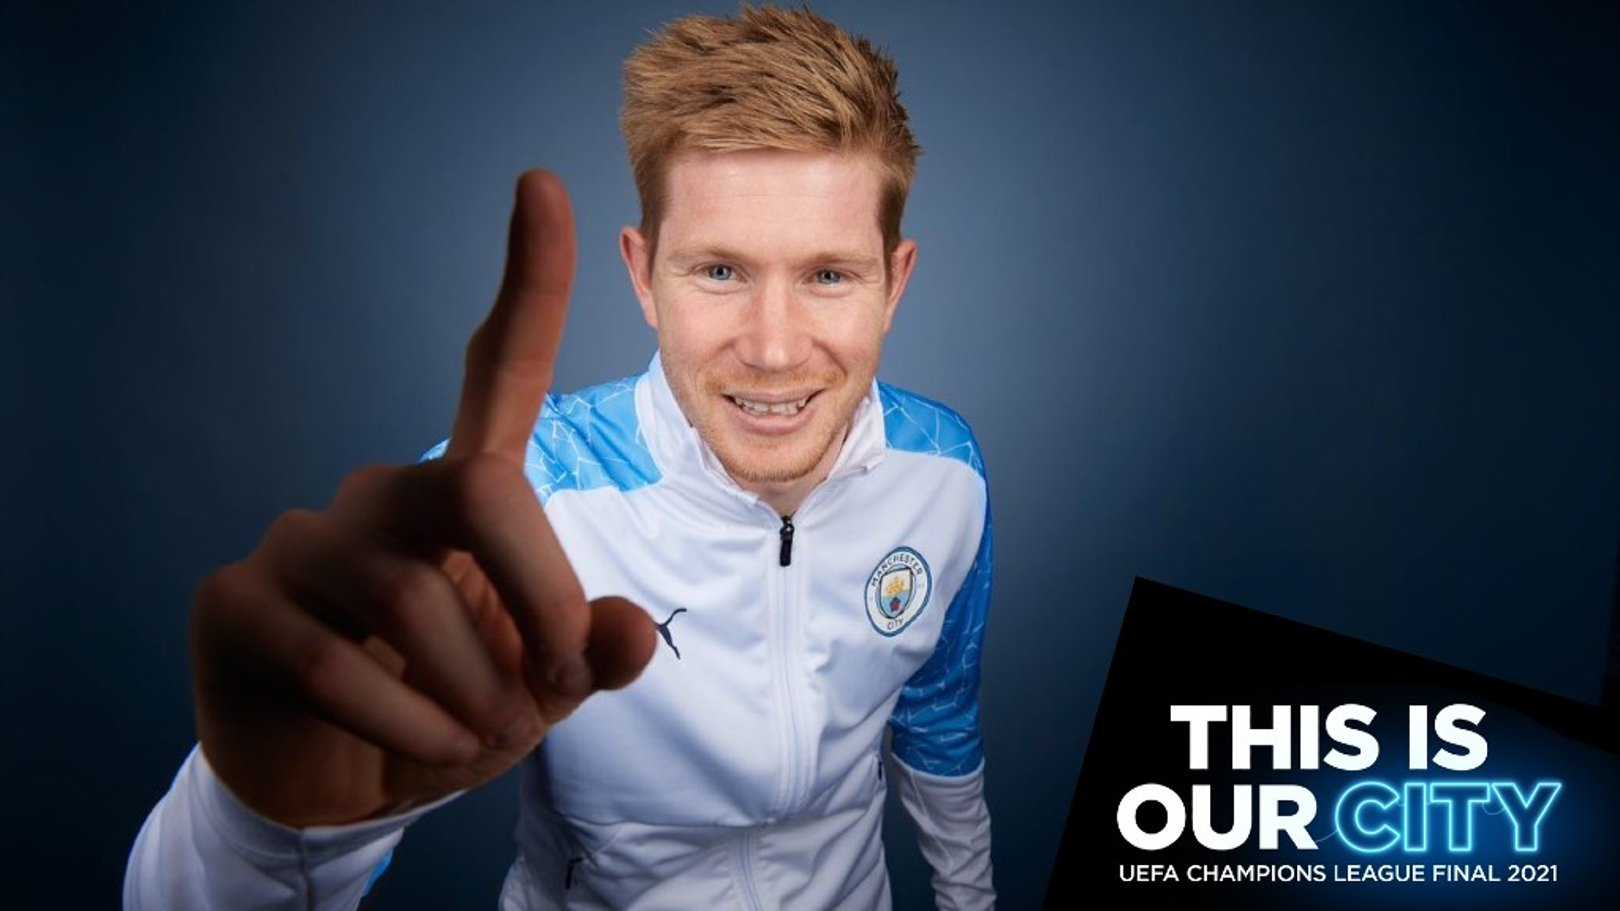 De Bruyne: Playing in the Champions League final is 'a privilege'